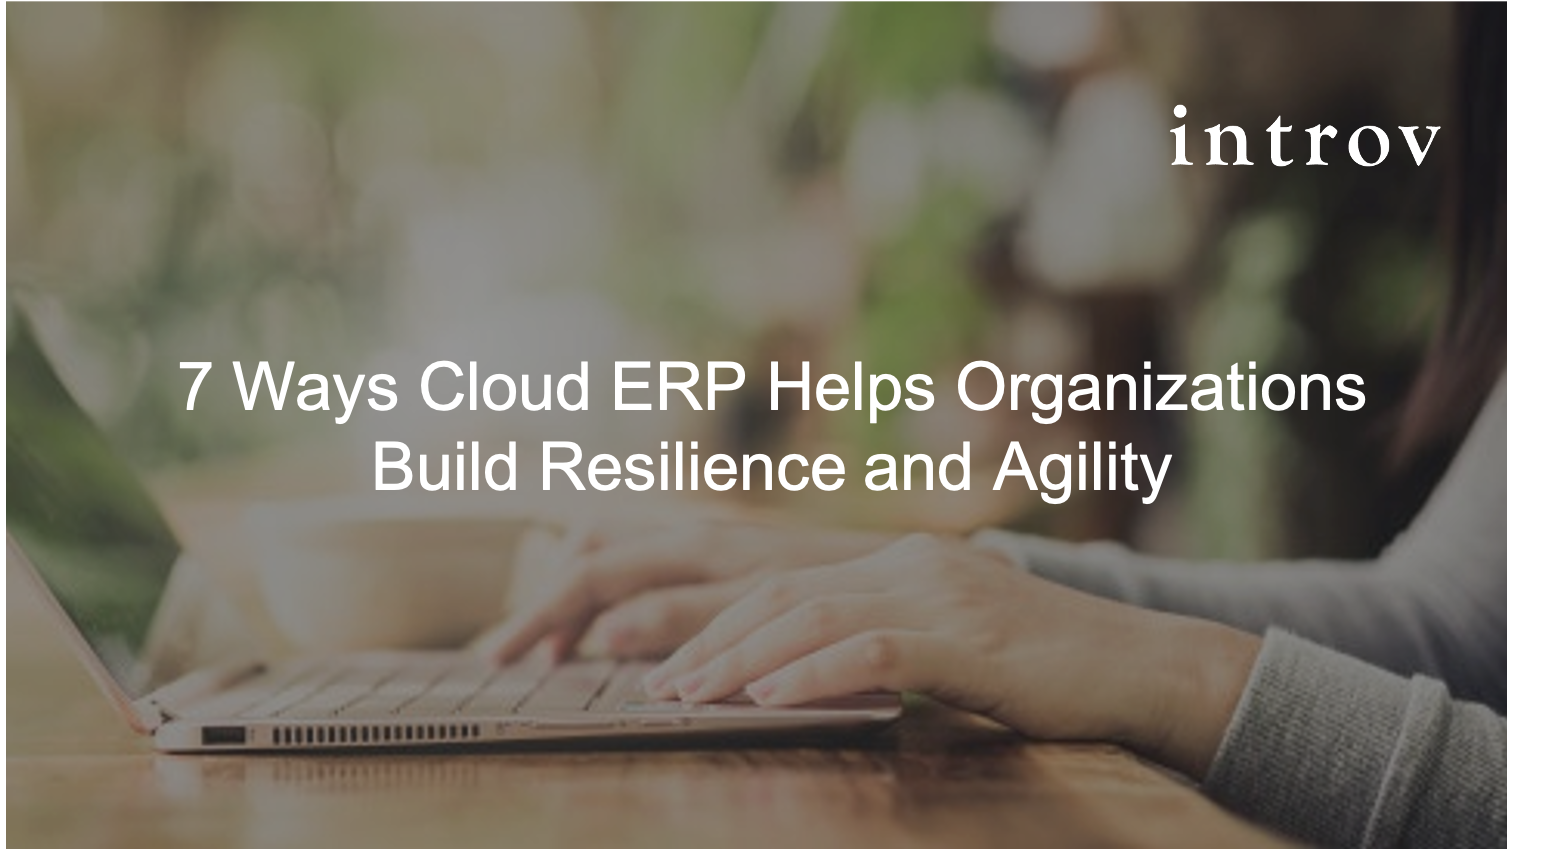 Whitepaper: 7 Ways Cloud ERP Helps Organizations Build Resilience and Agility